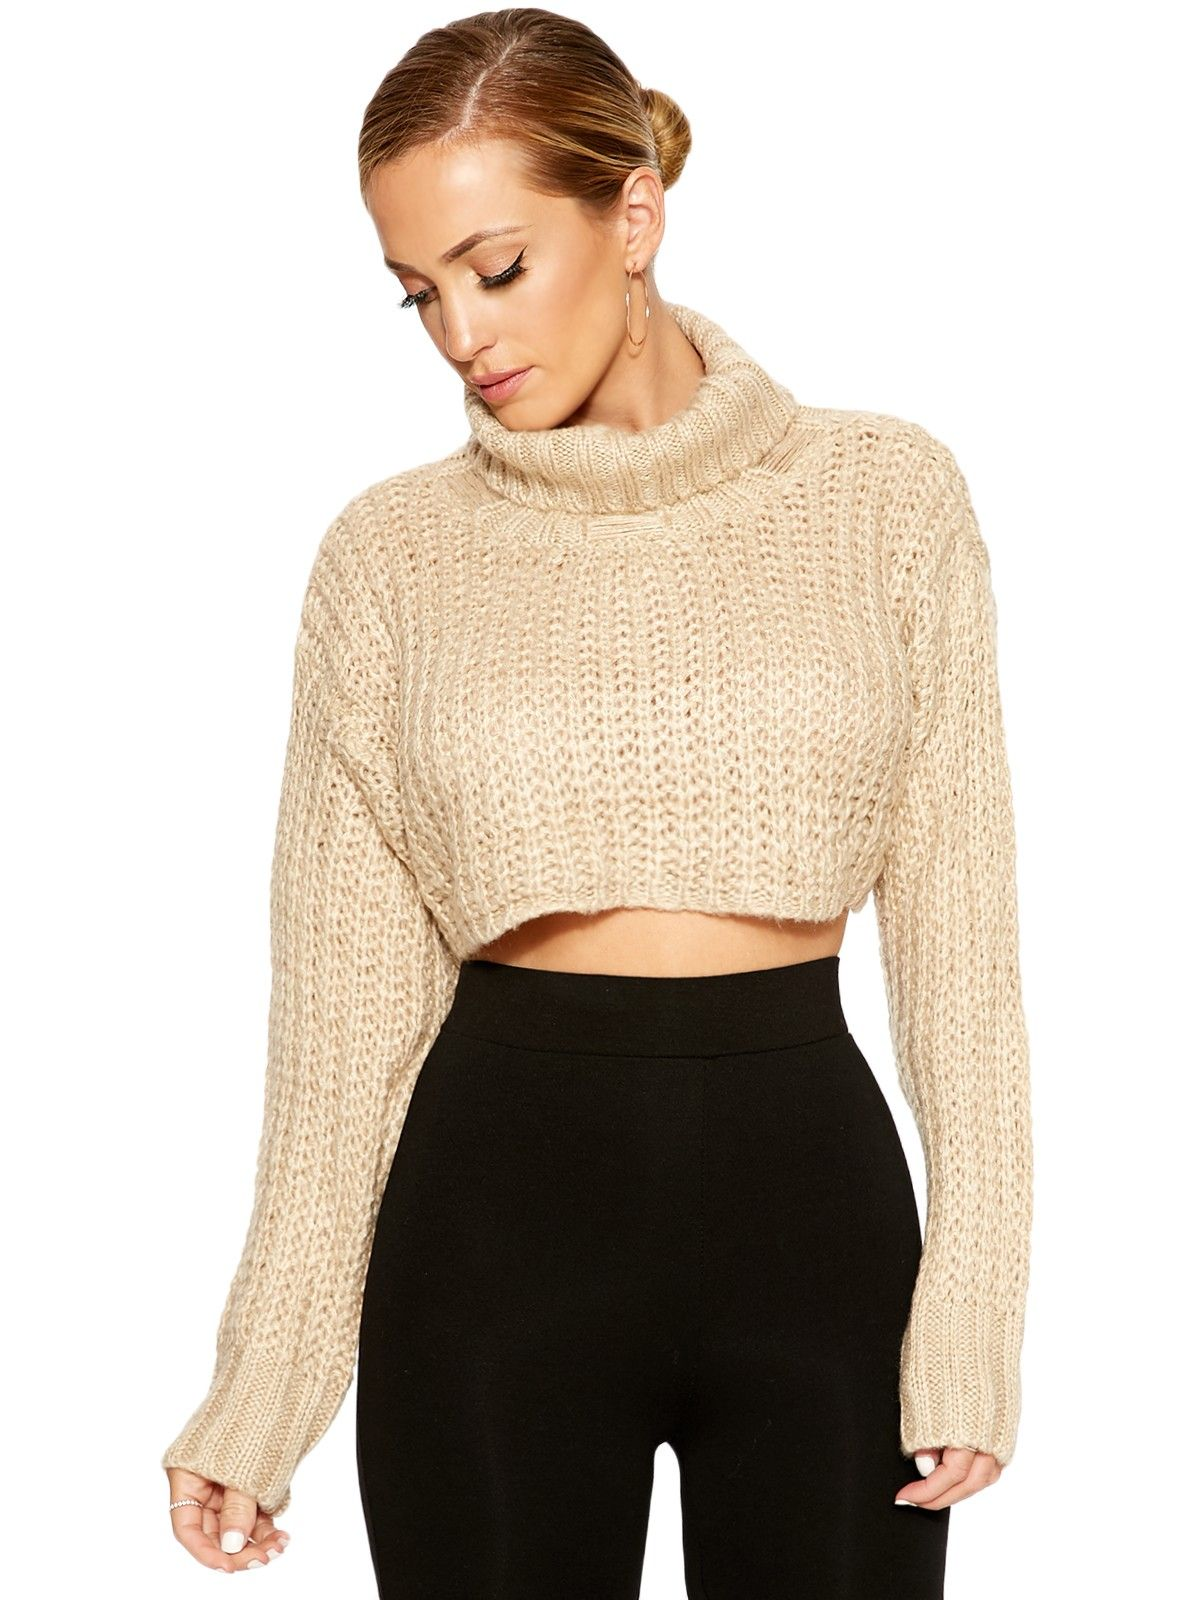 Up To My Neck Cropped Sweater - We got the beautiful cozy goods  ...